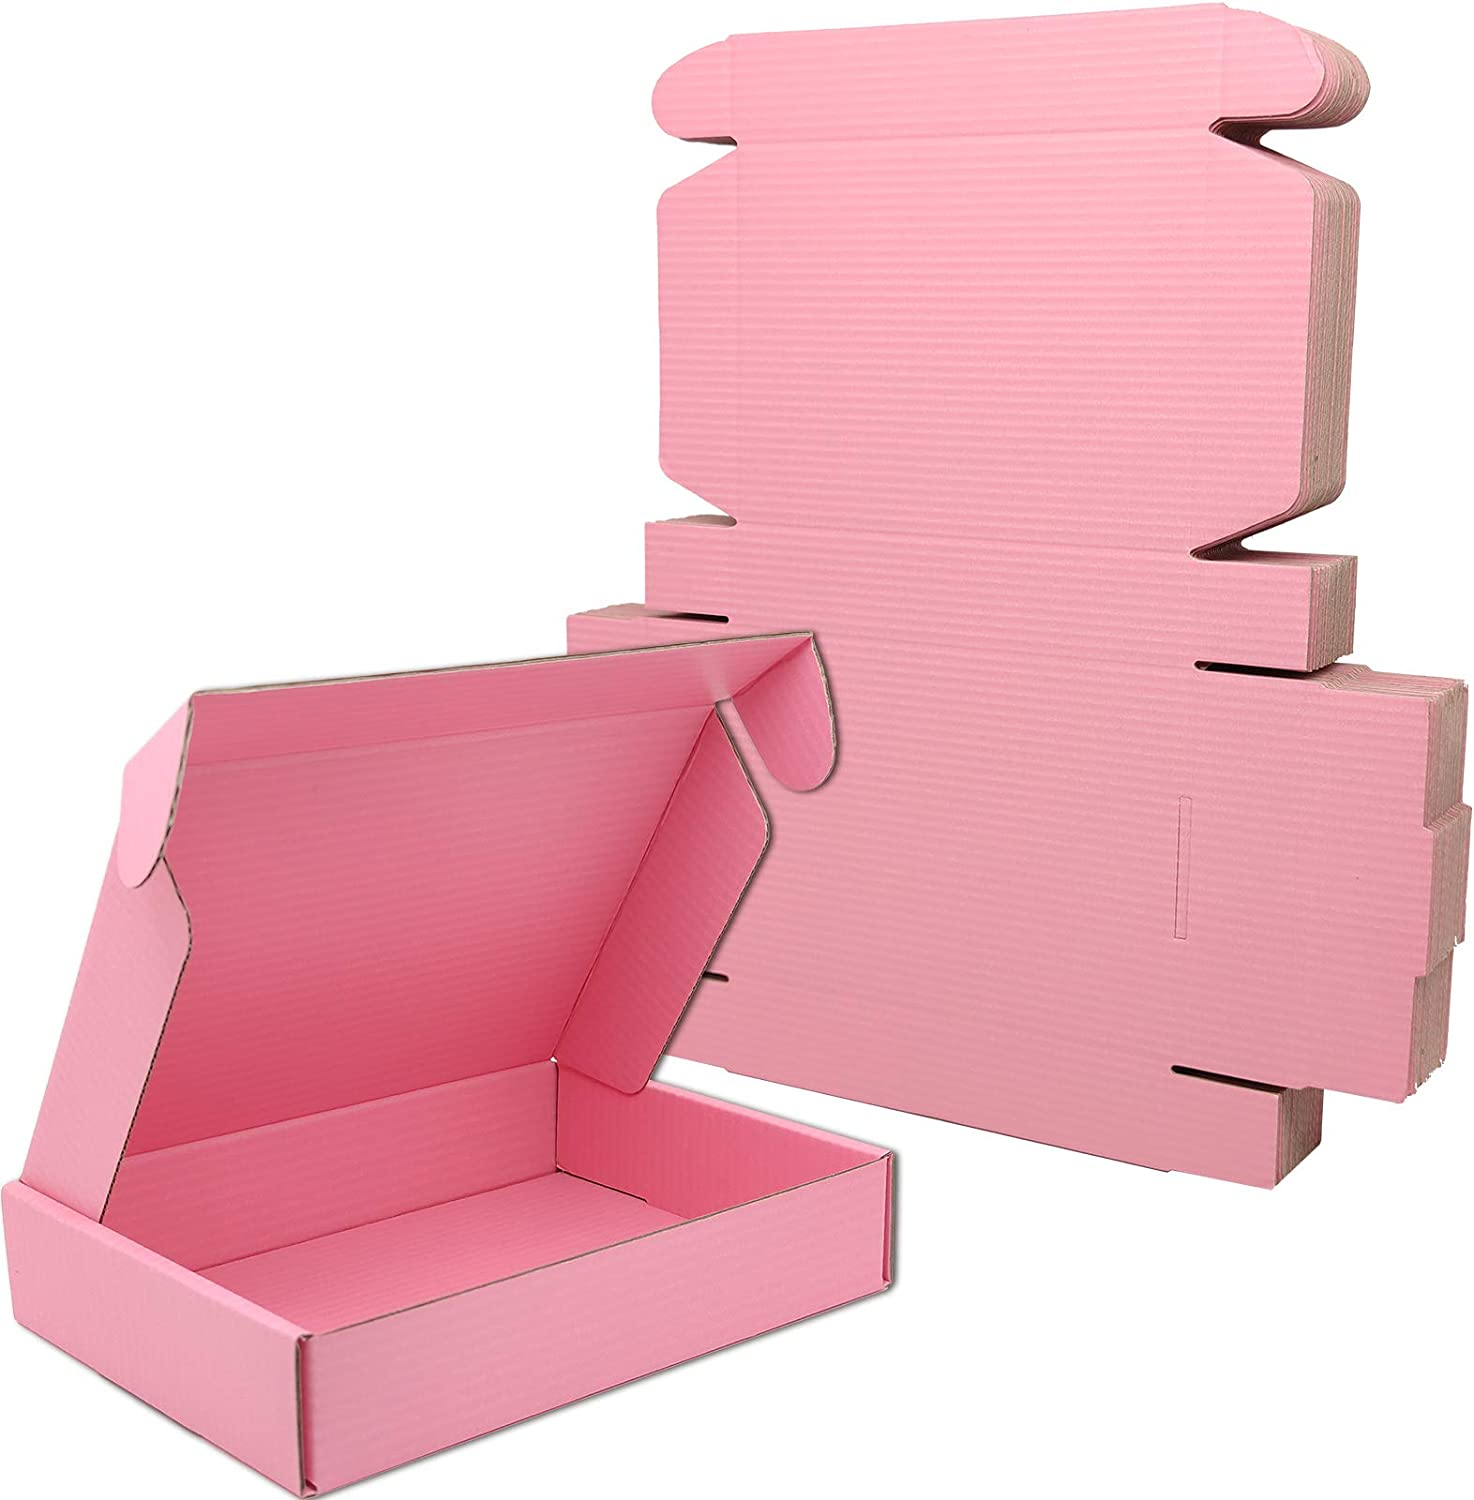 Lmuze Small Pink Shipping Boxes for 25 - Max 74% OFF Under blast sales of Pack Business